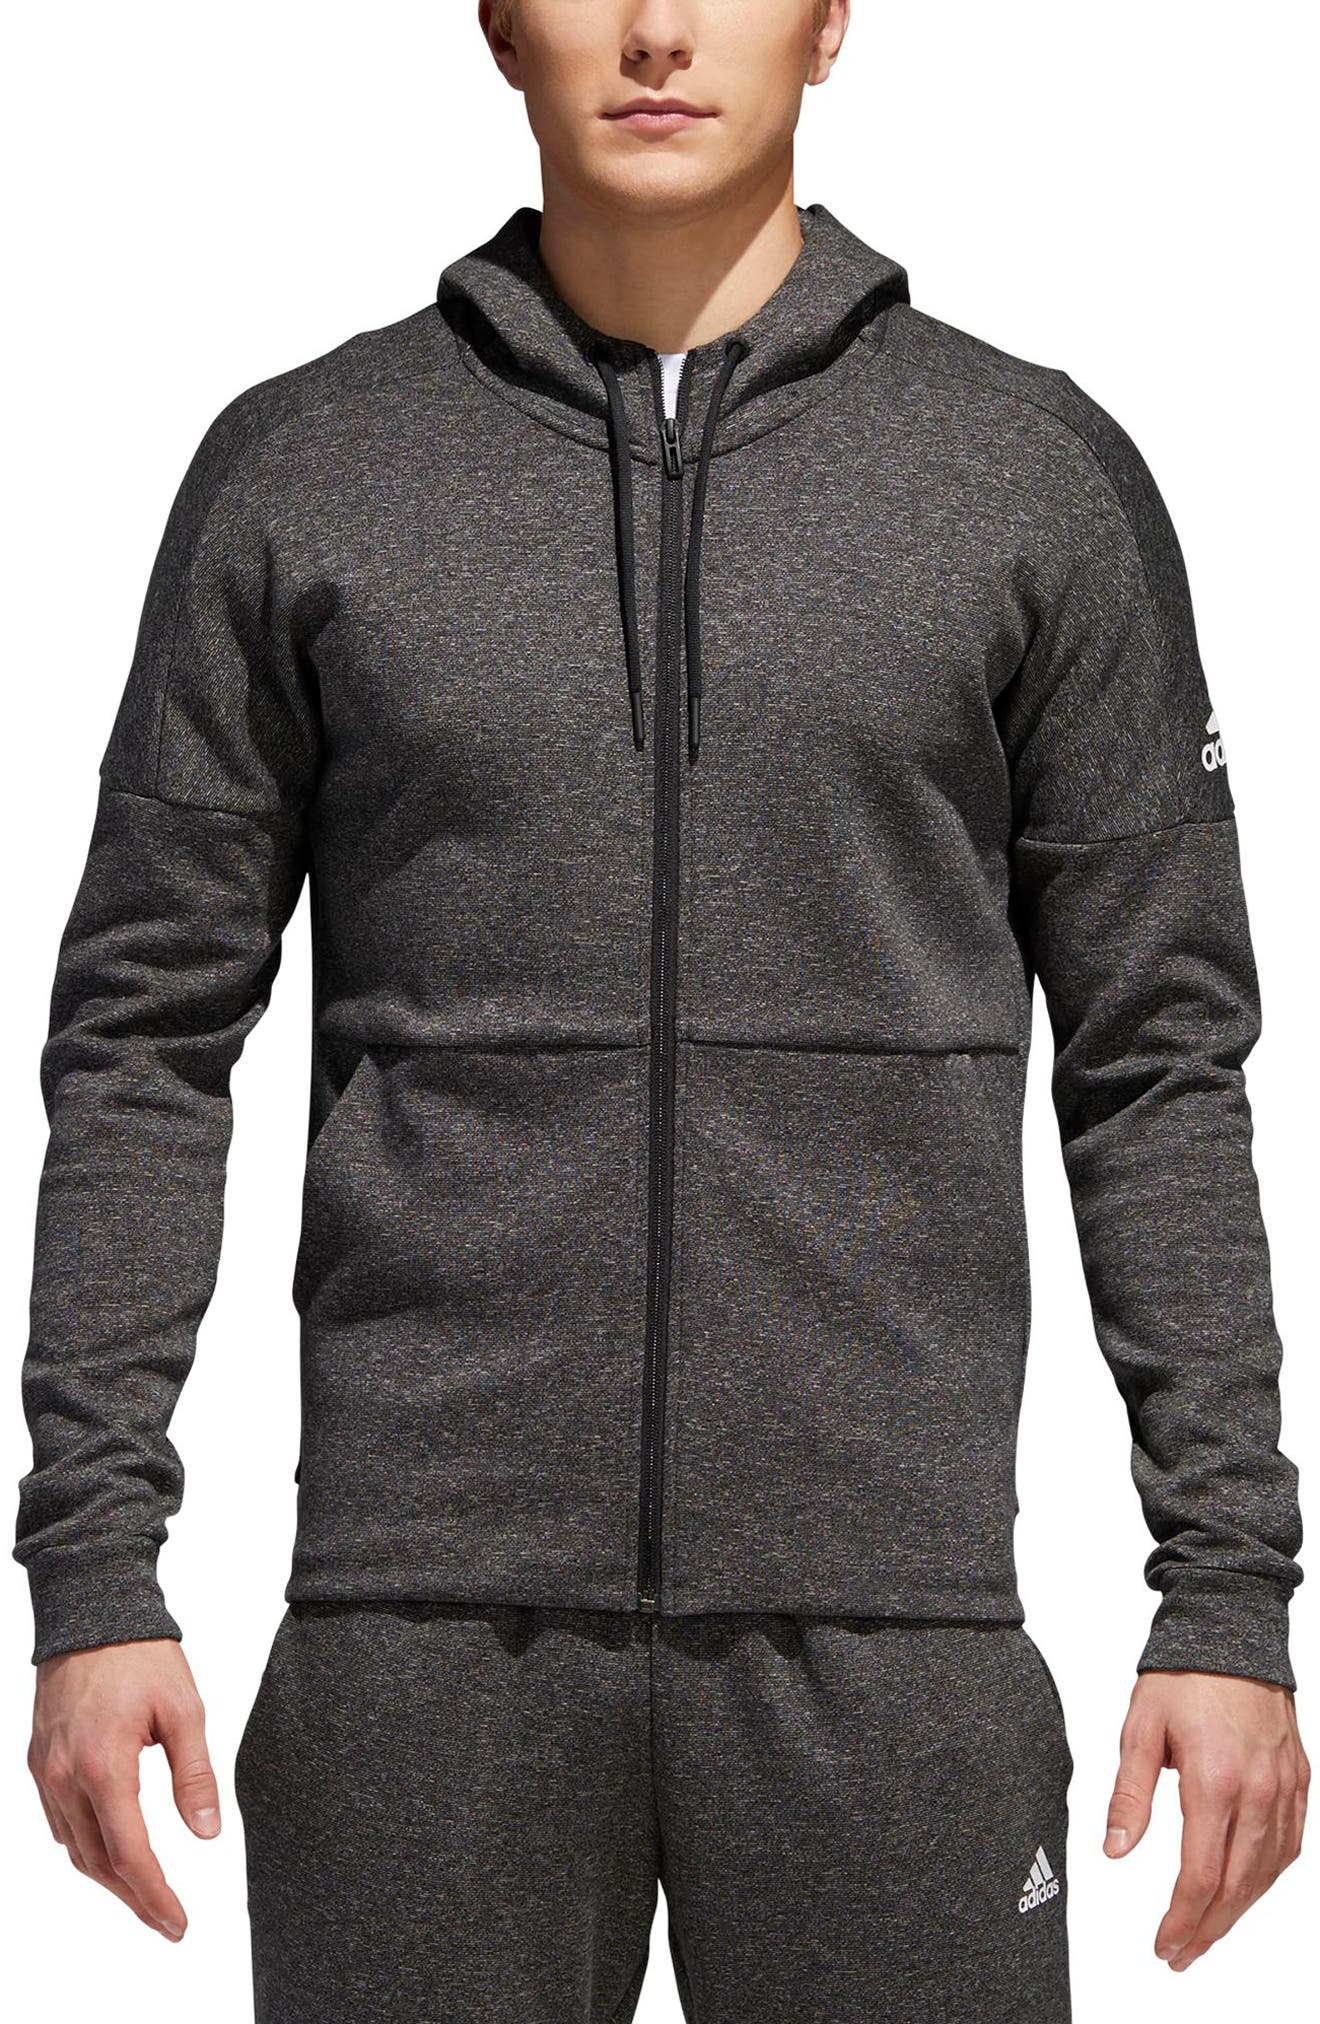 ID Stadium Zip Hoodie,                         Main,                         color, Stadium Htr/ Black